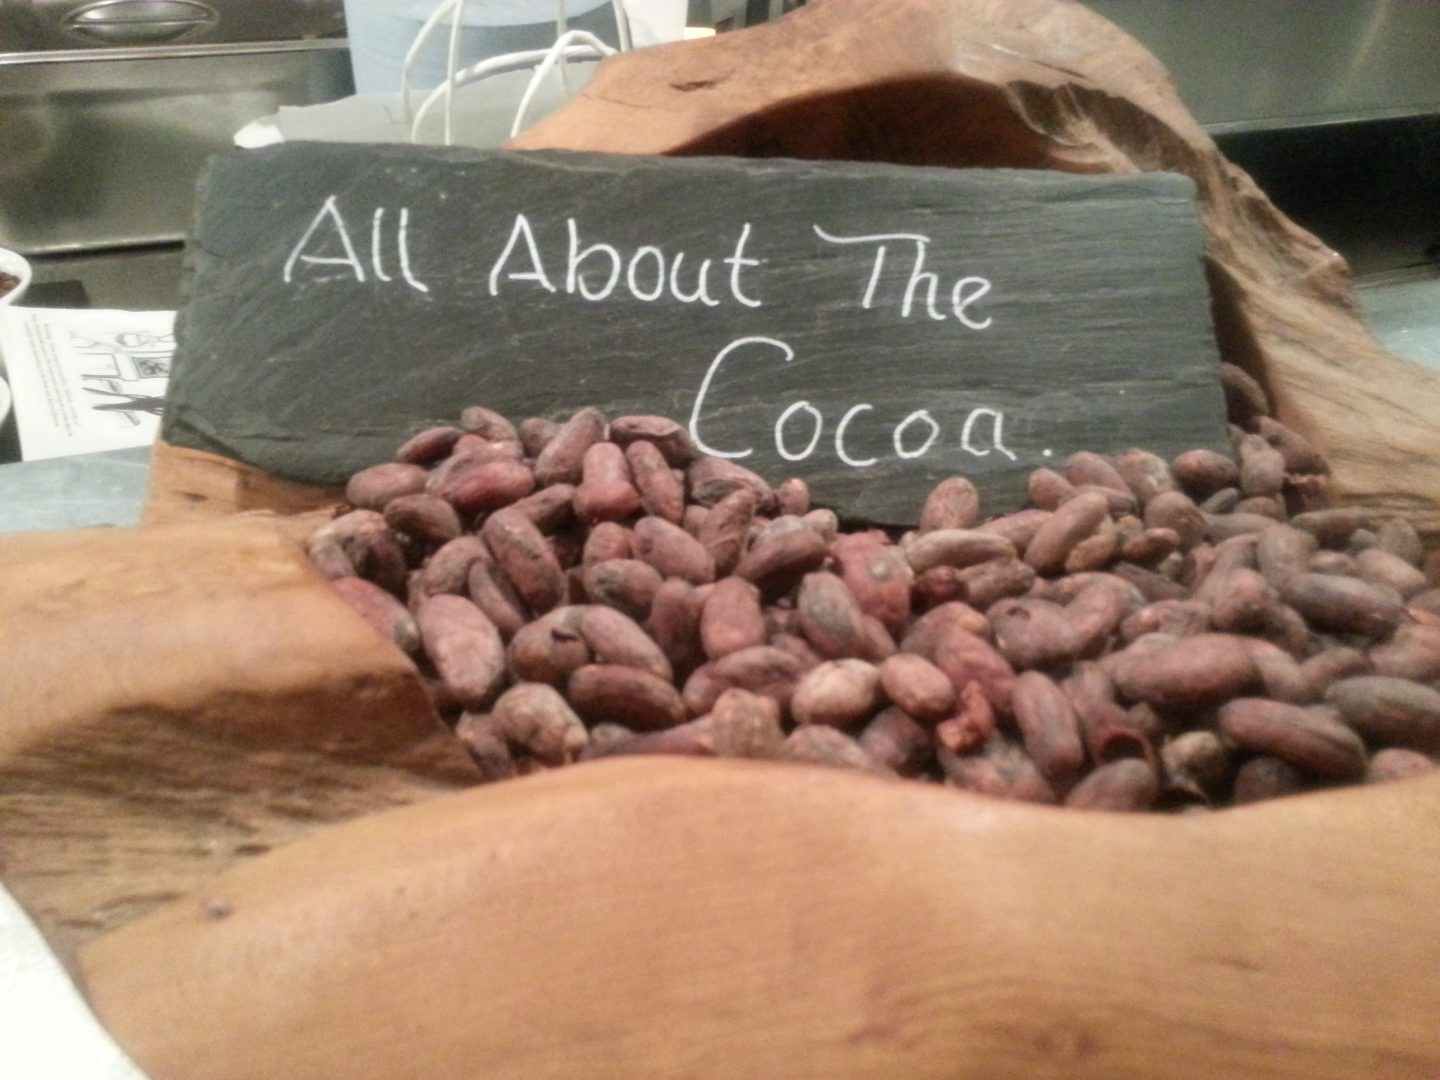 CHILDREN'S CHOCOLATE WORKSHOP at COCOA VAULTS